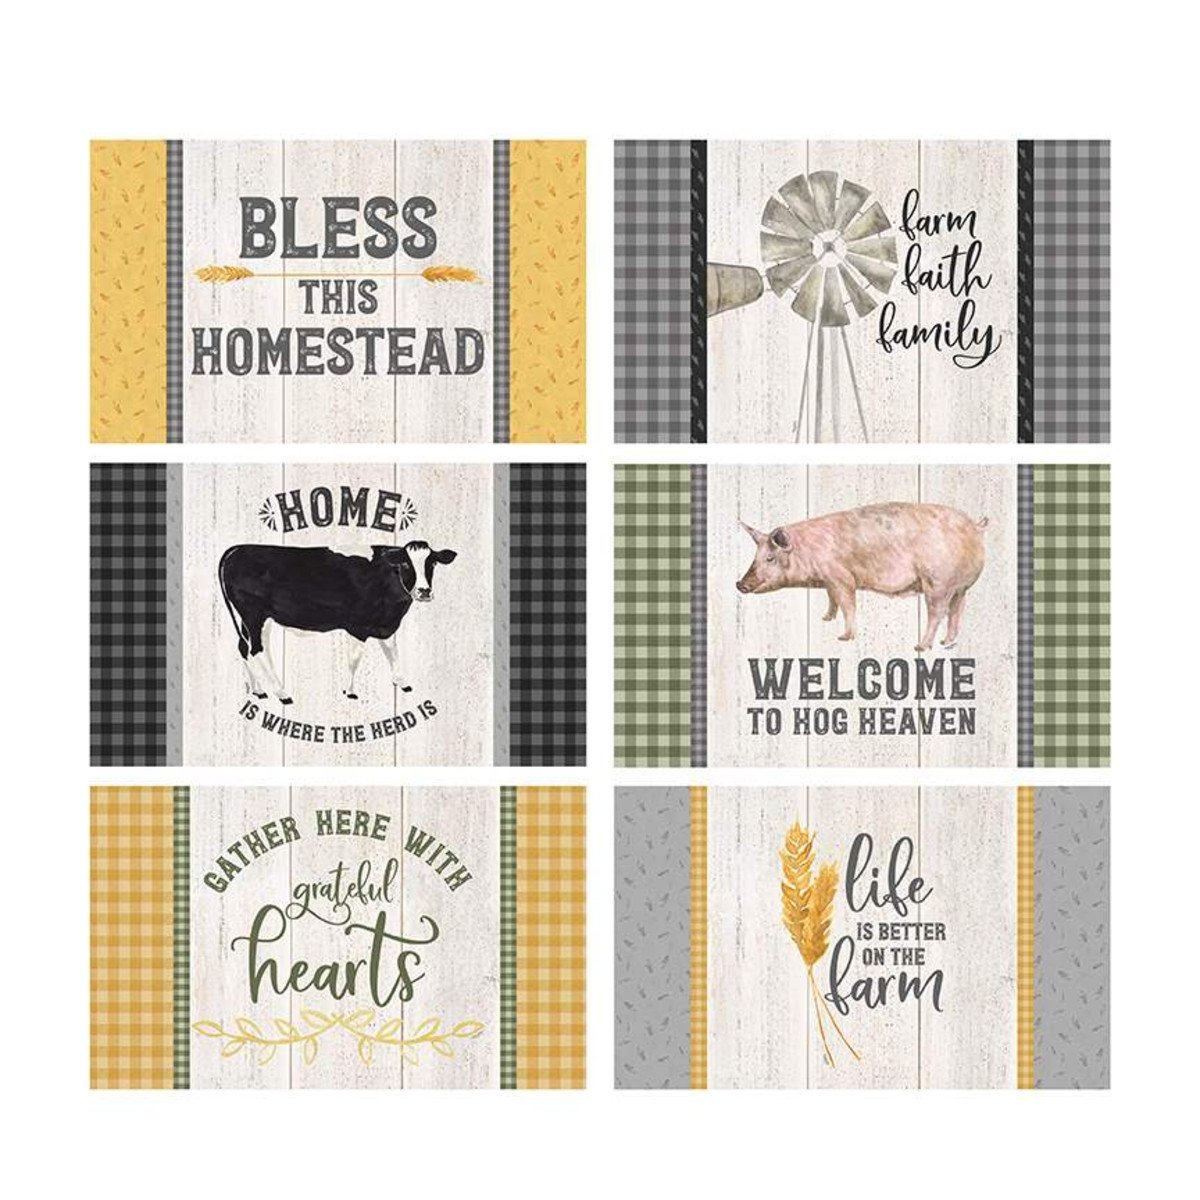 Homestead Life Placemat Panel 36 P9454-PANEL